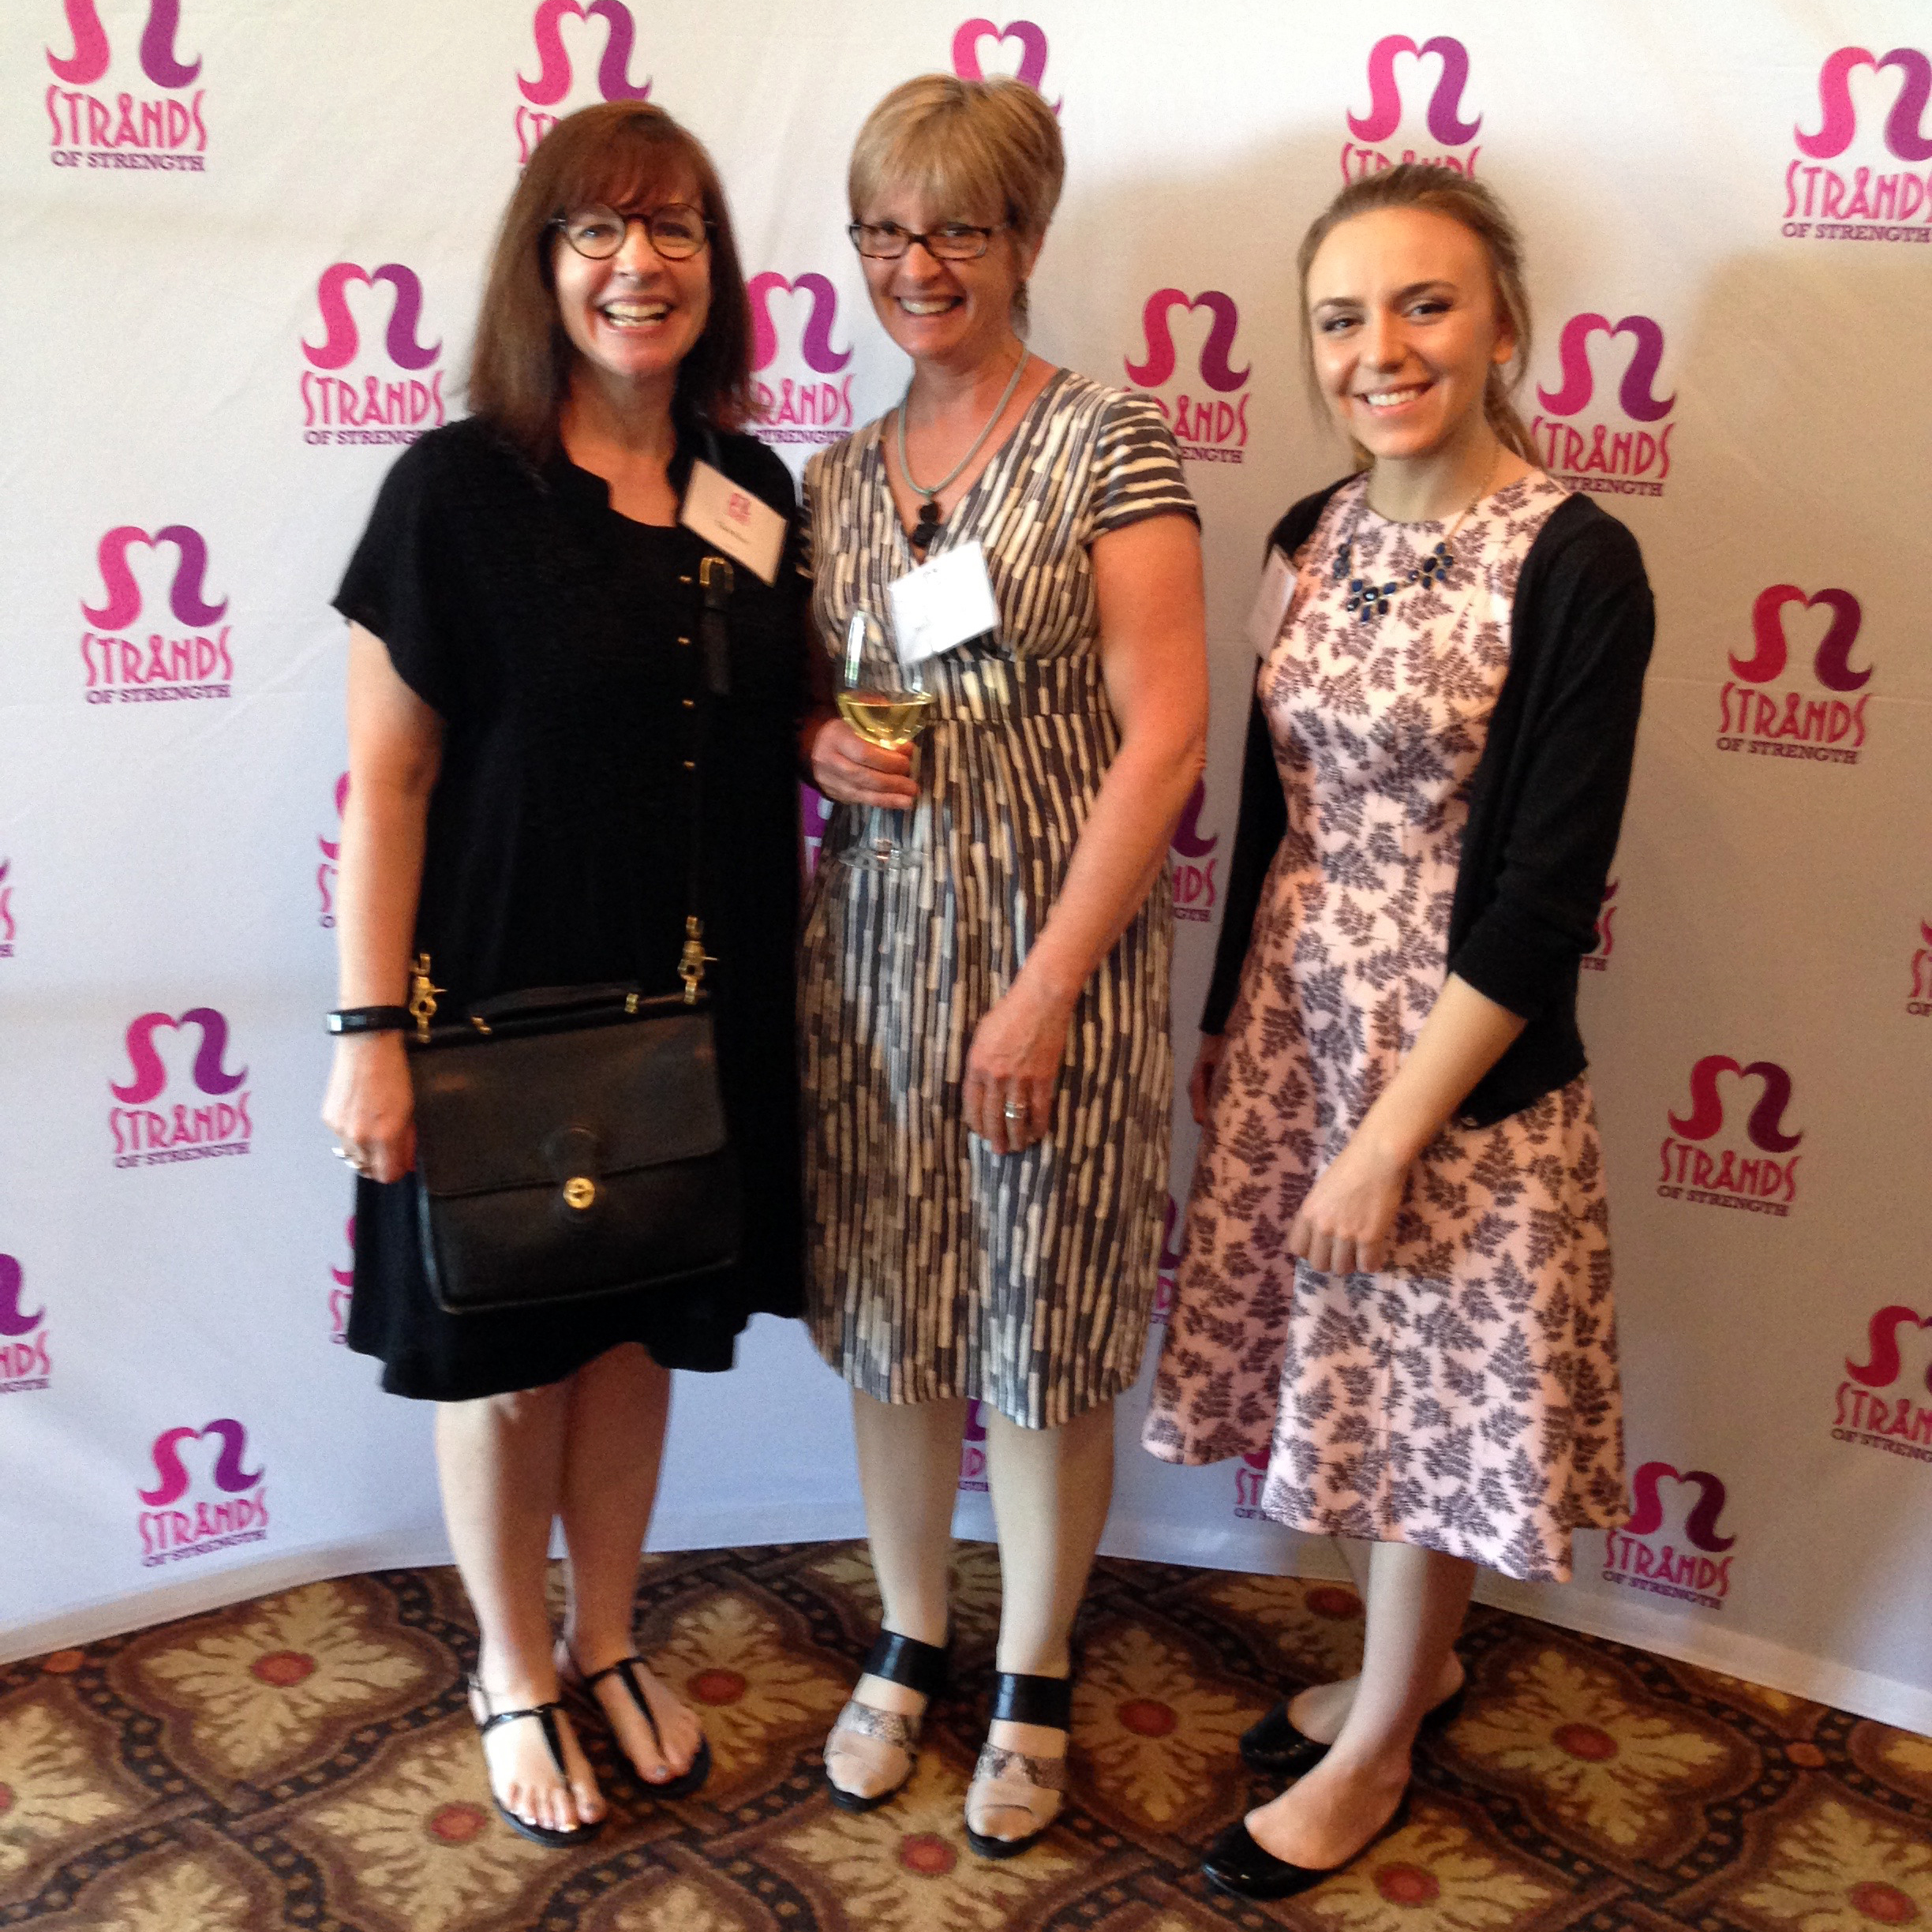 Tina Rice, Teresa Paschke, & Jen Wichers at the Strands of Strength Spring Luncheon